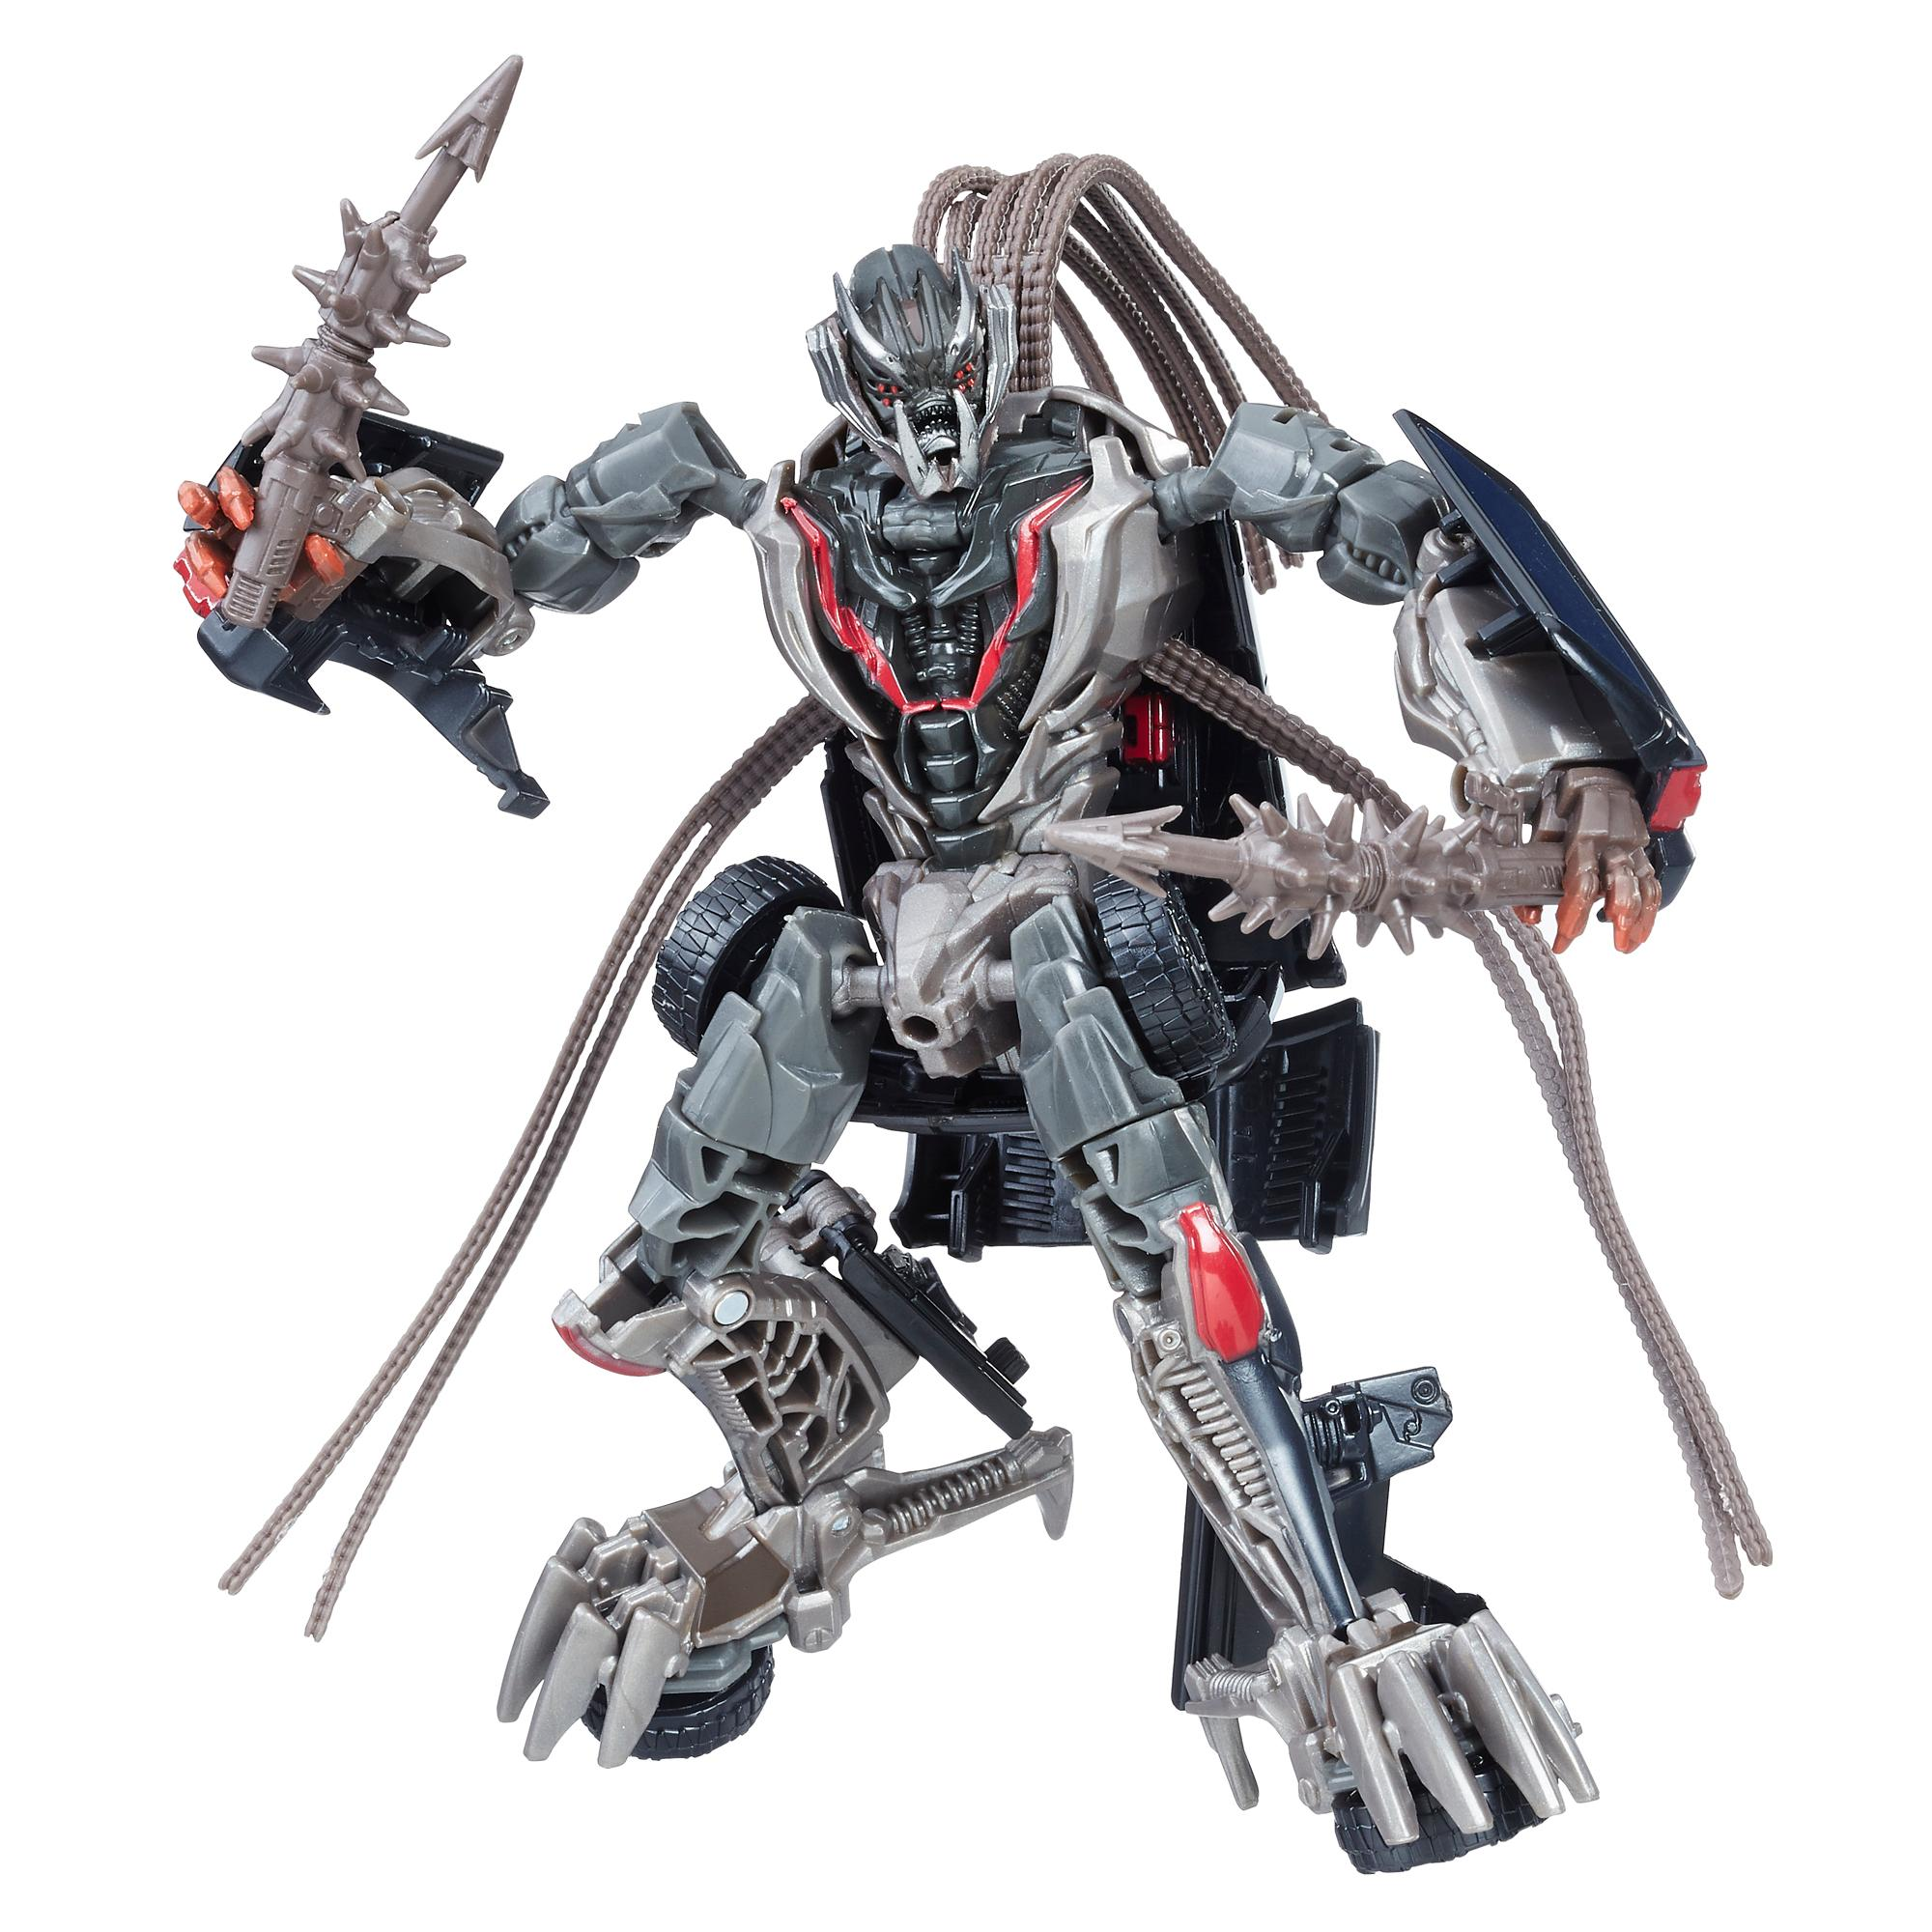 Transformers Studio Series 03 - Crowbar classe deluxe do filme 3